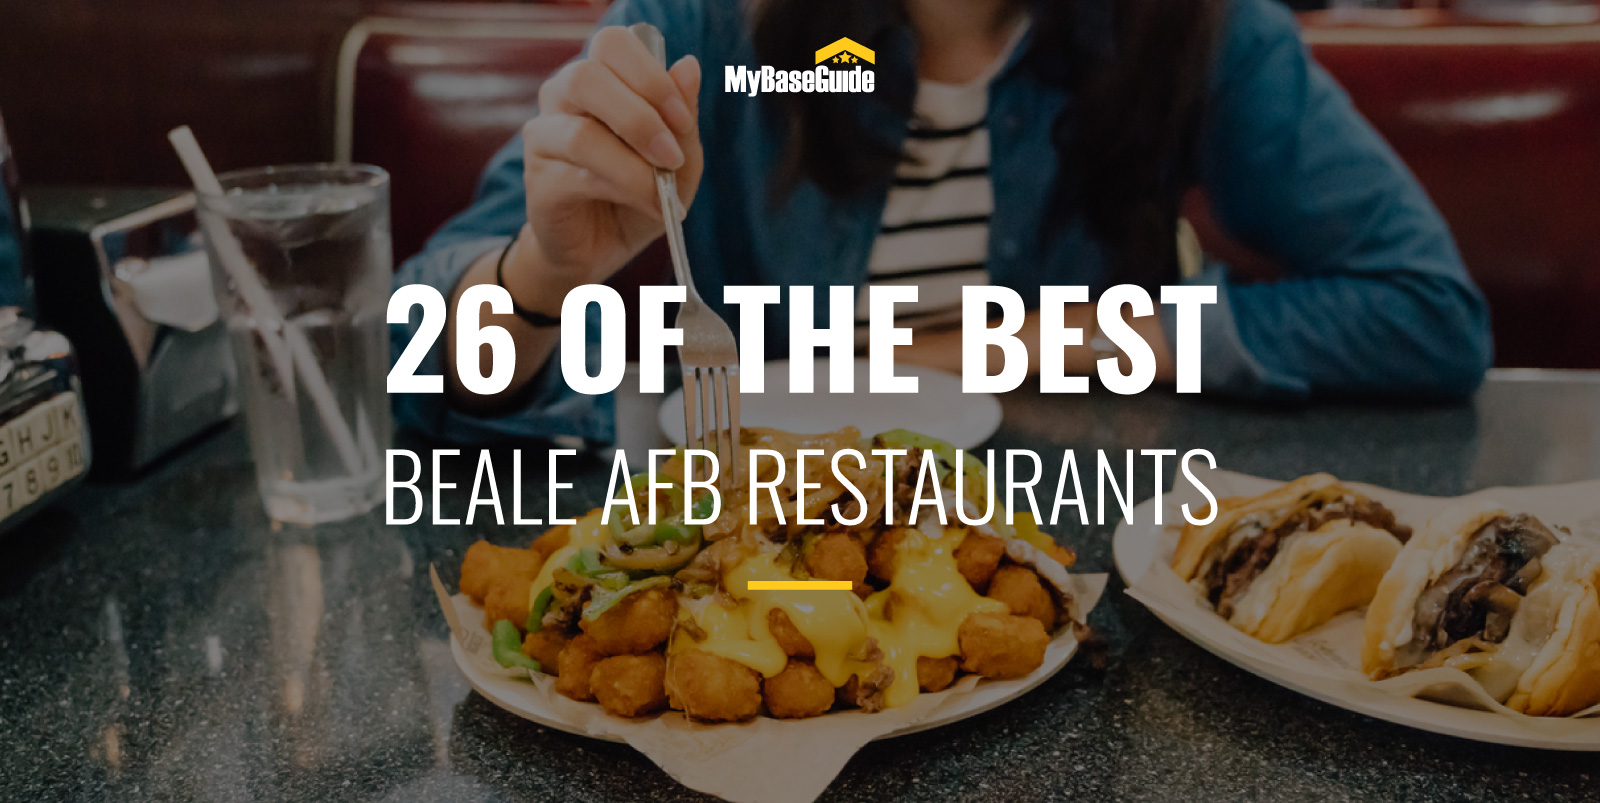 26 of the Best Beale AFB Restaurants